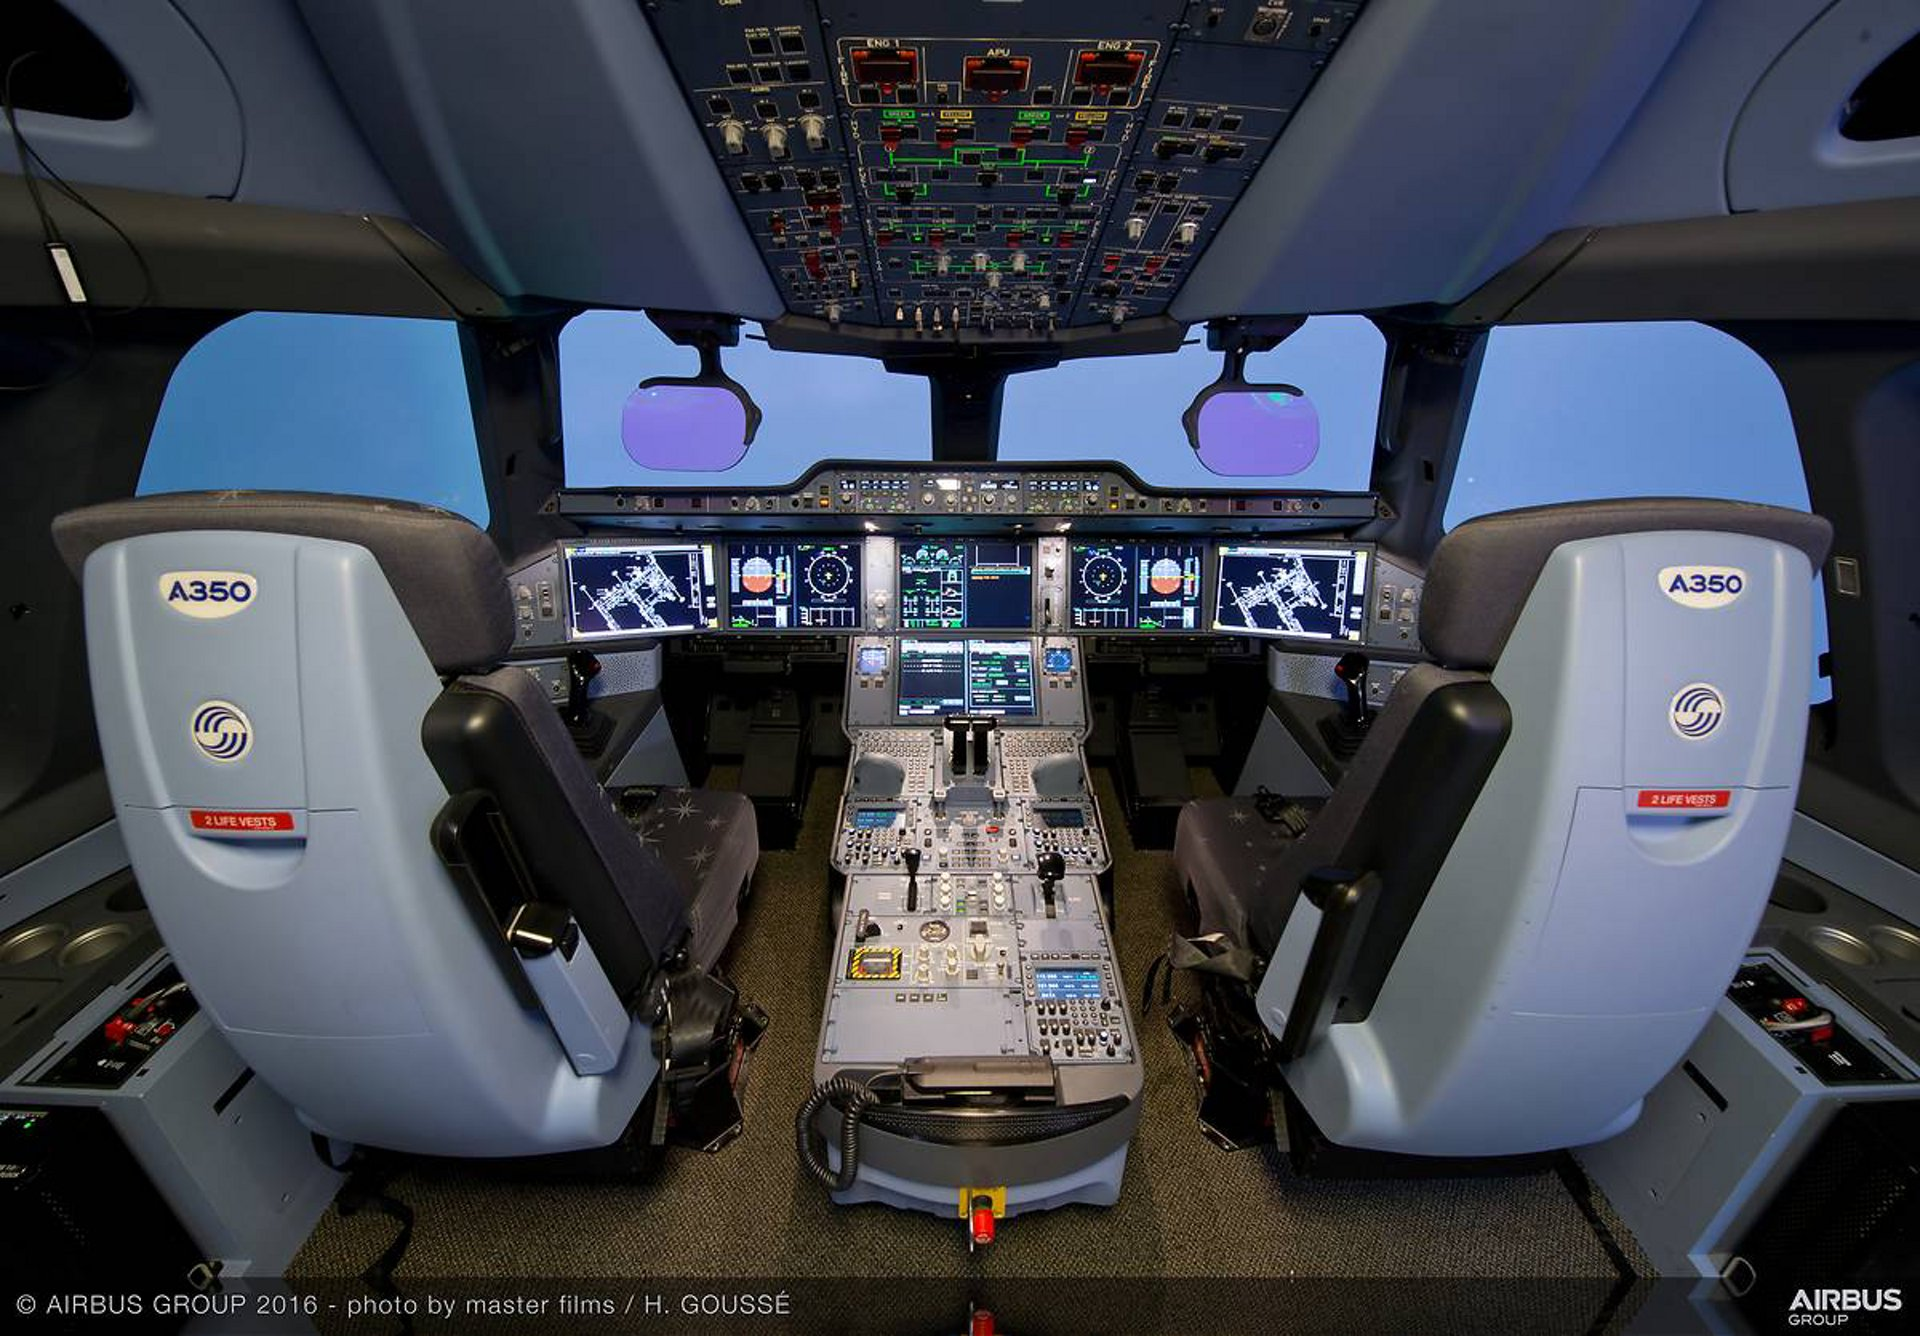 The 10 flight simulators at Airbus' Saint-Martin campus in Toulouse, France – such as this one for an A350 XWB widebody jetliner – are kept busy as testers validate new systems and upgrades to existing ones